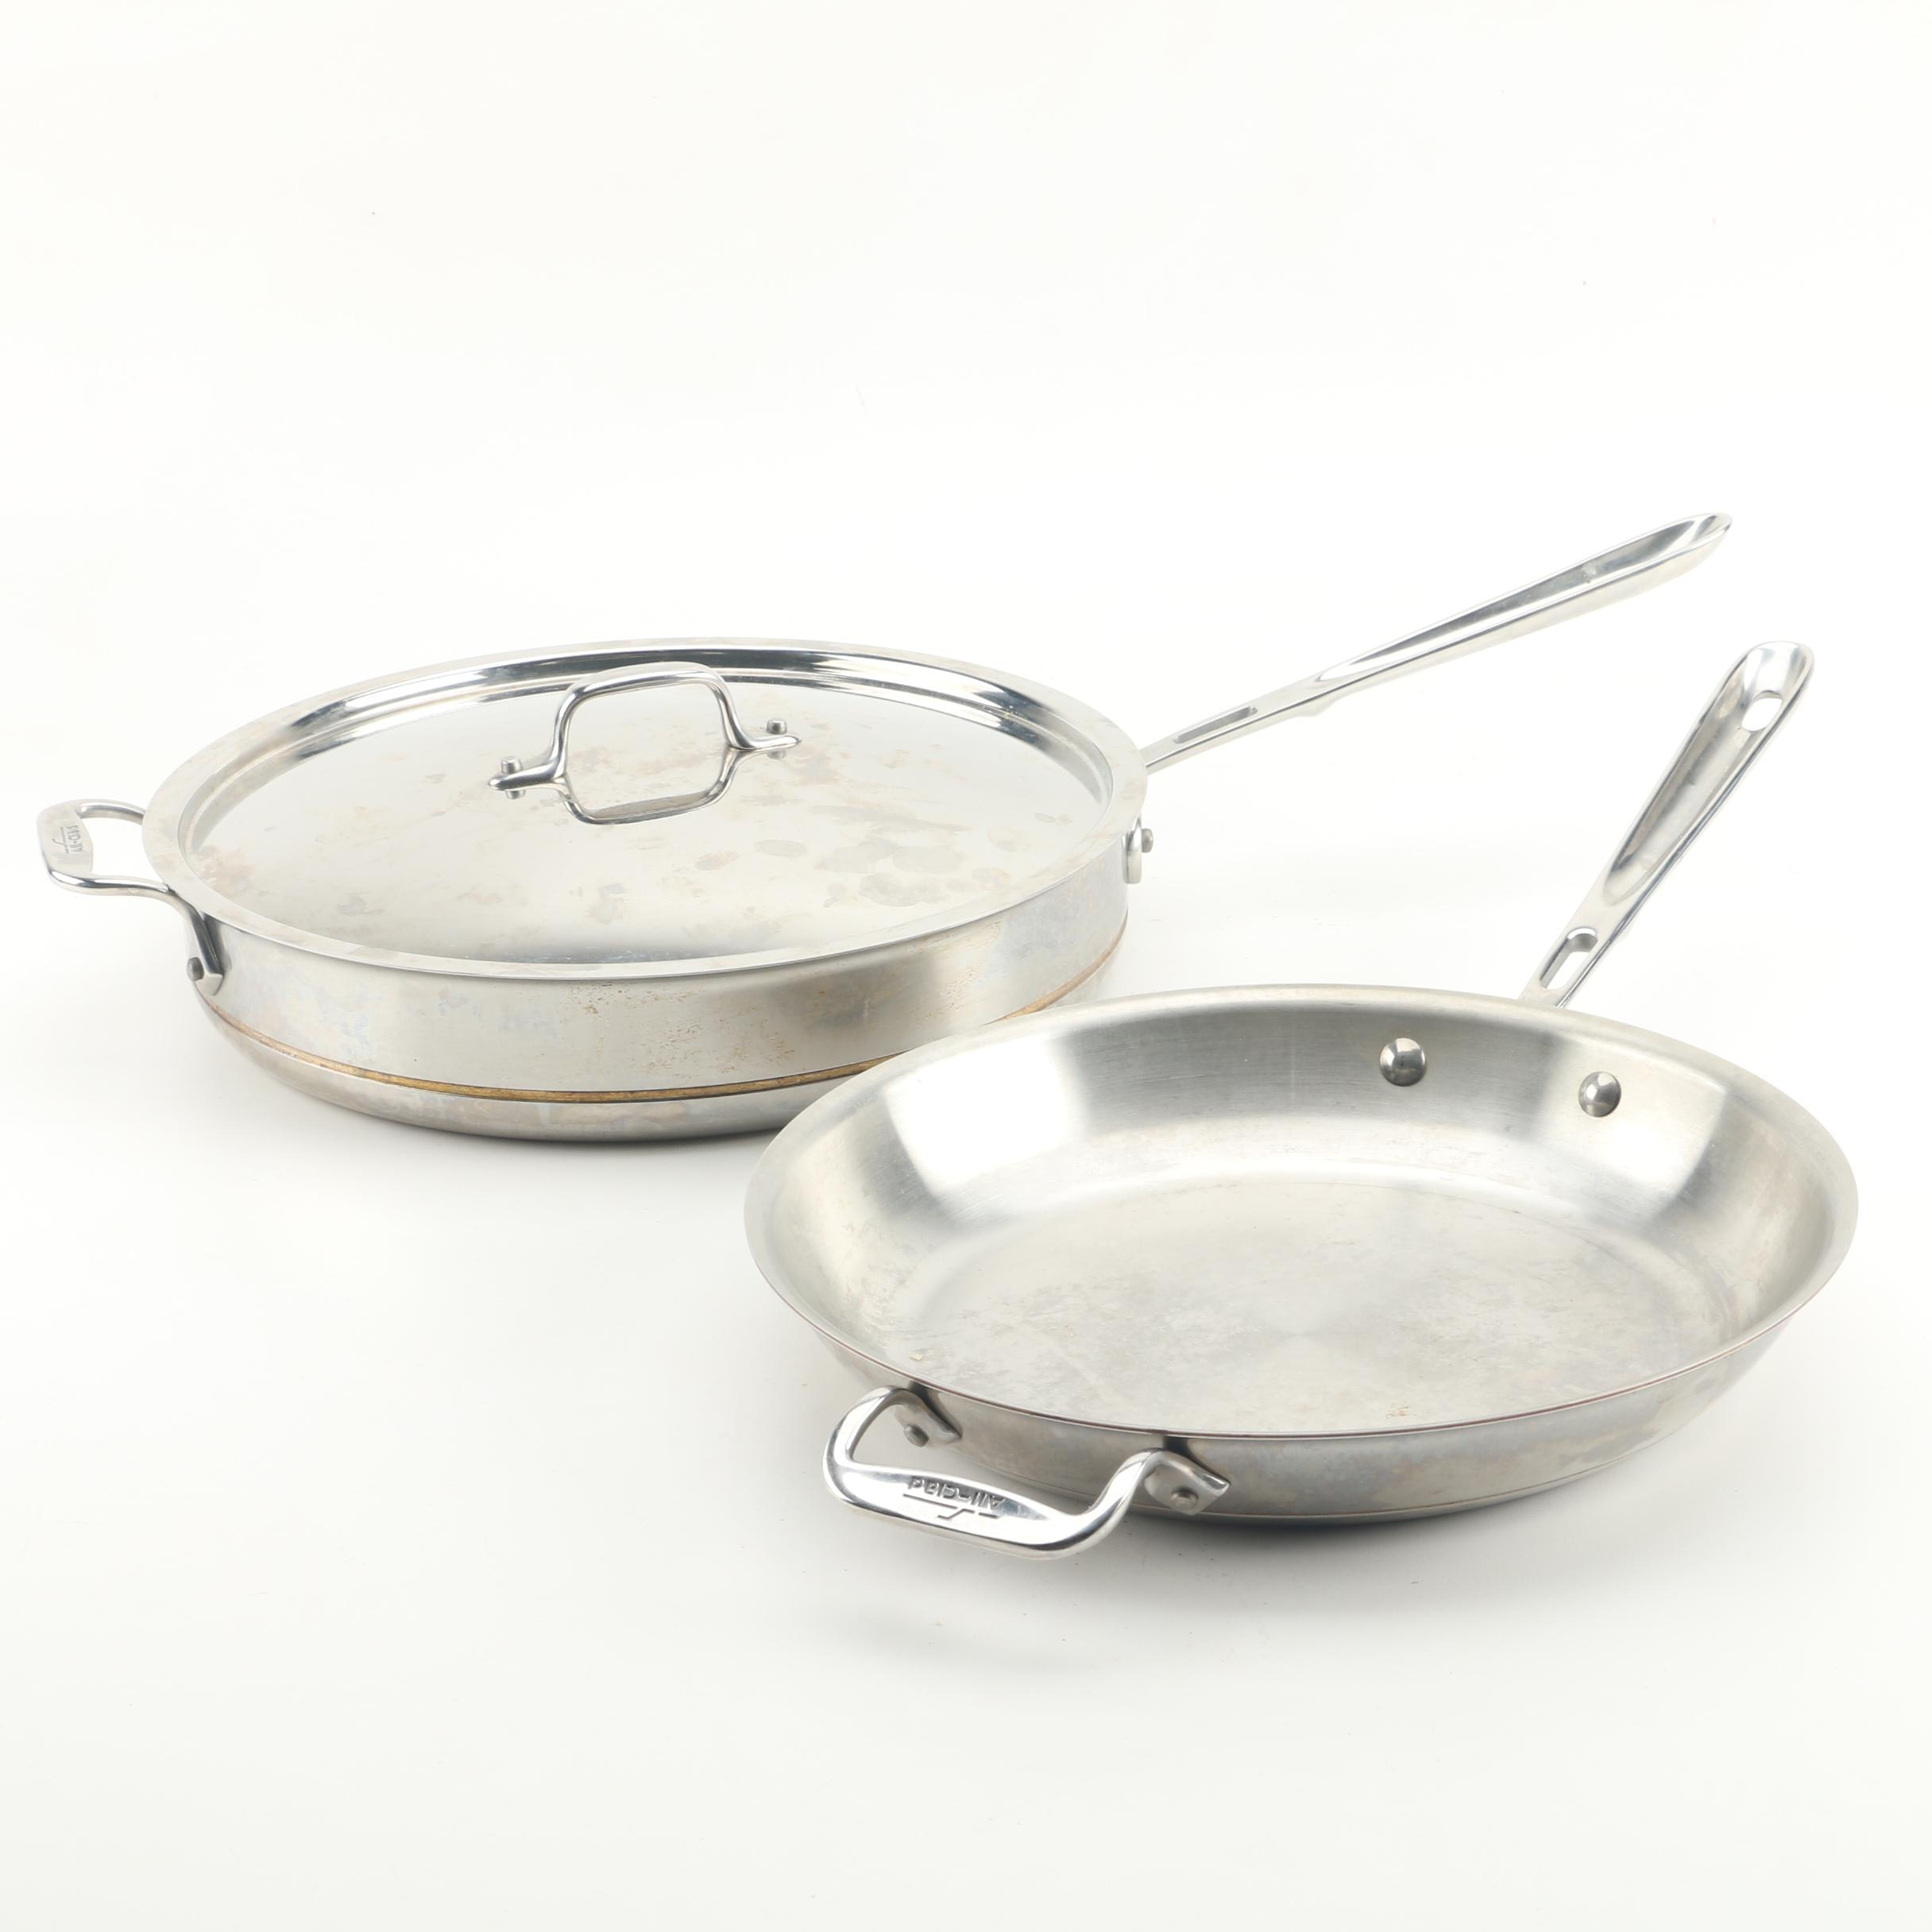 All-Clad Stainless Steel Sauce and Sauté Pans